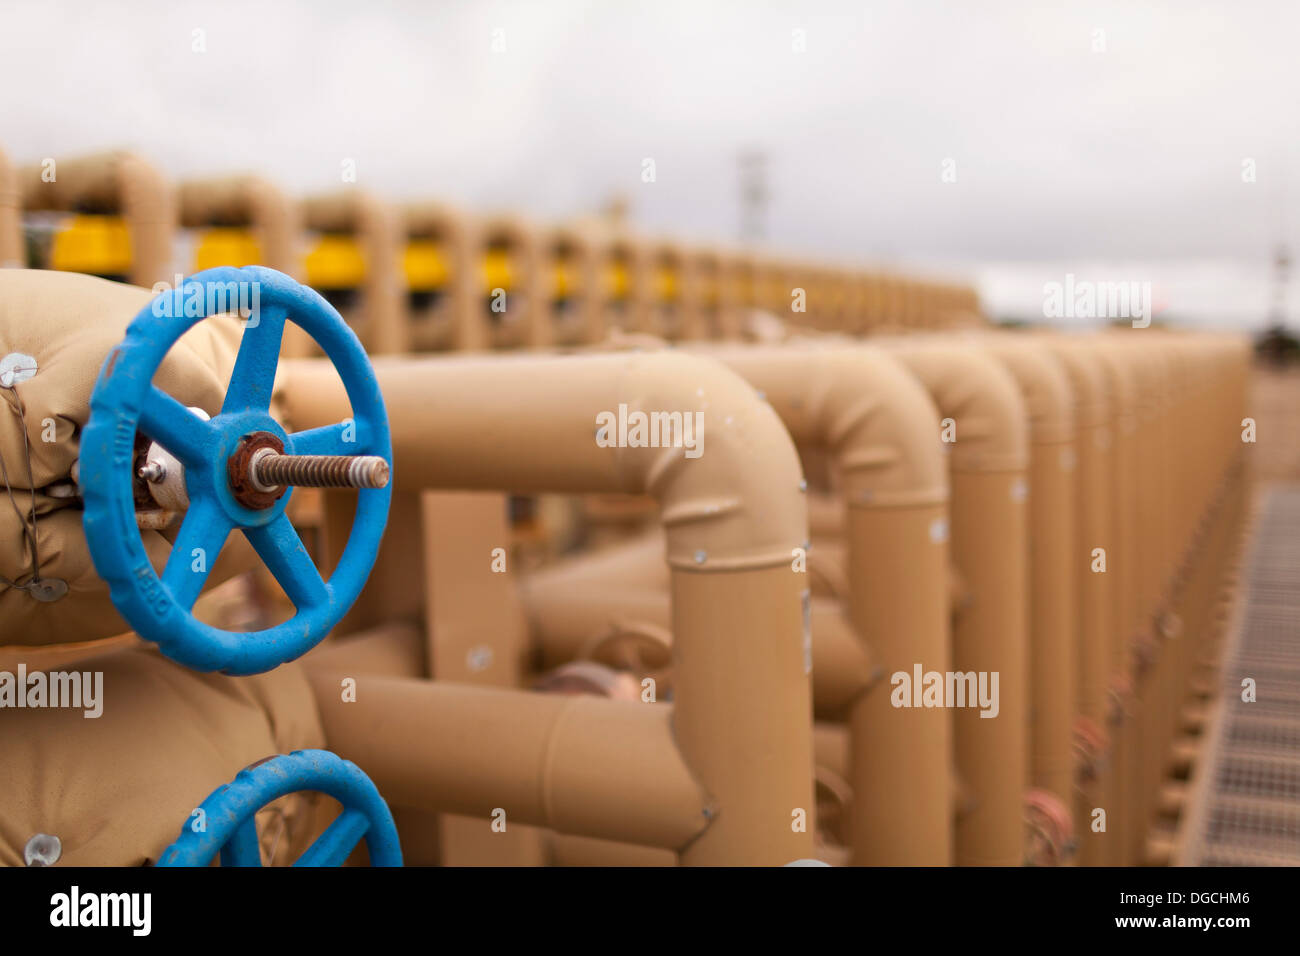 Fuel pipes in oil field, close up - Stock Image